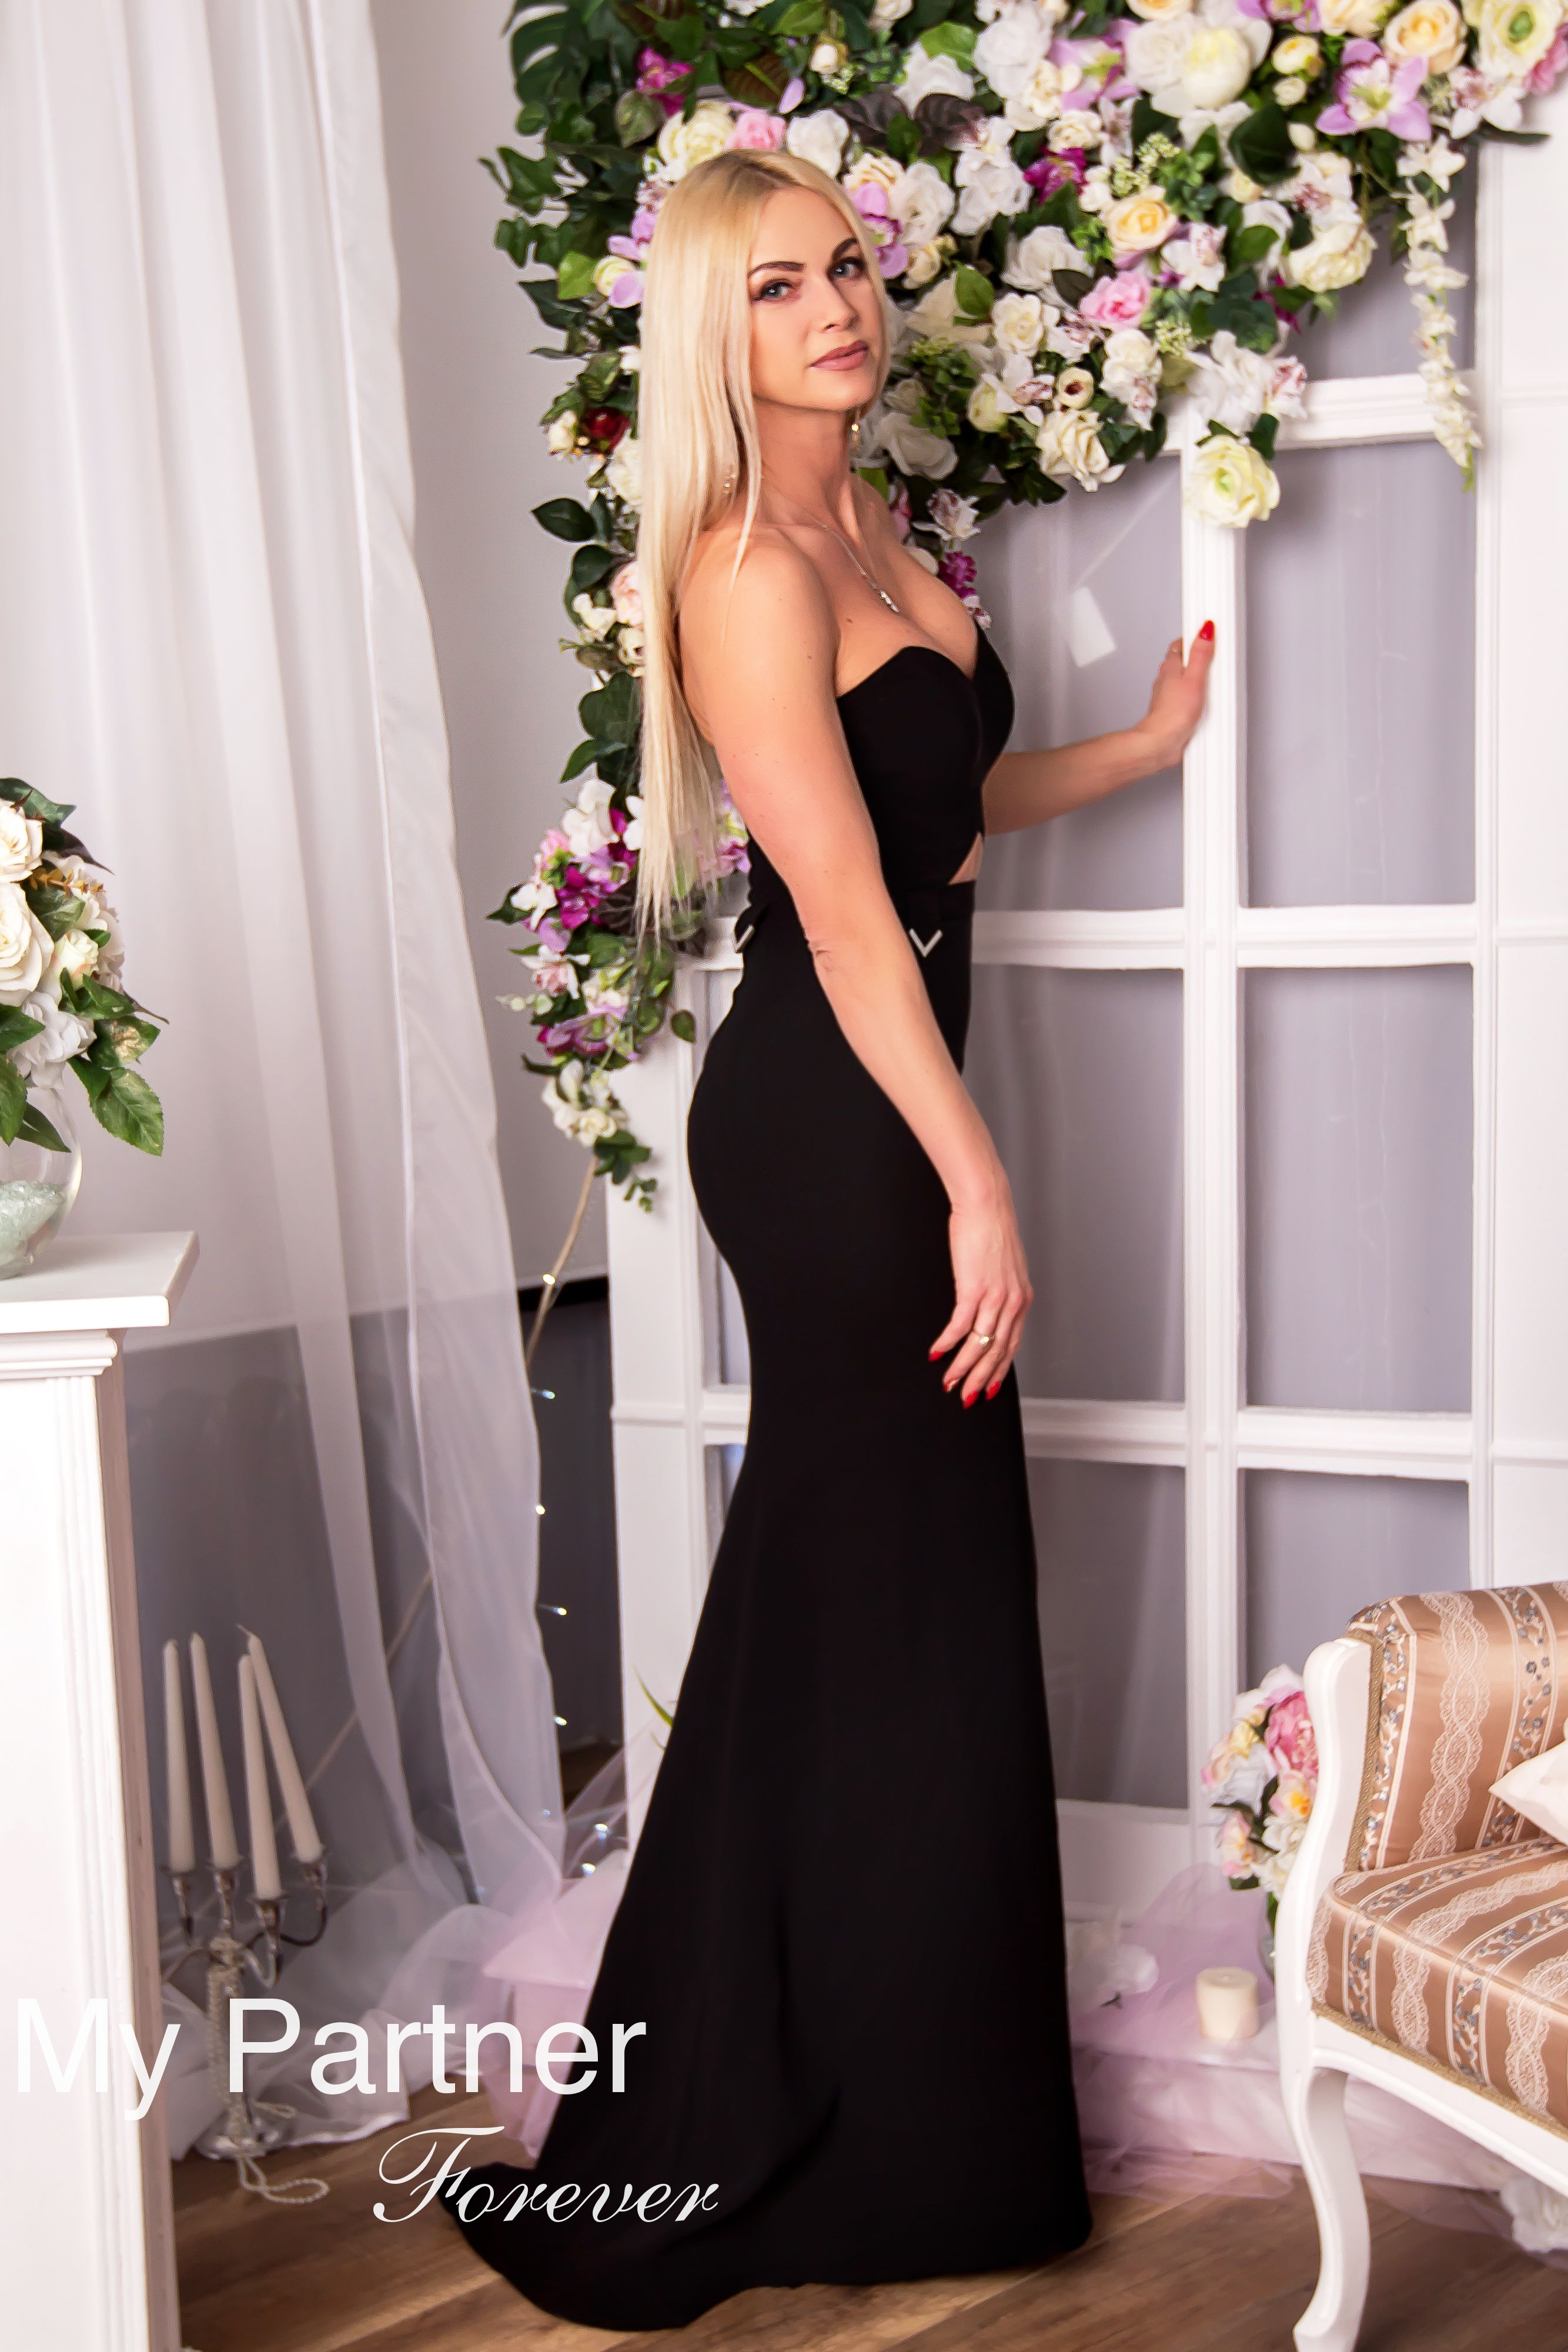 Datingsite to Meet Sexy Belarusian Girl Nataliya from Grodno, Belarus